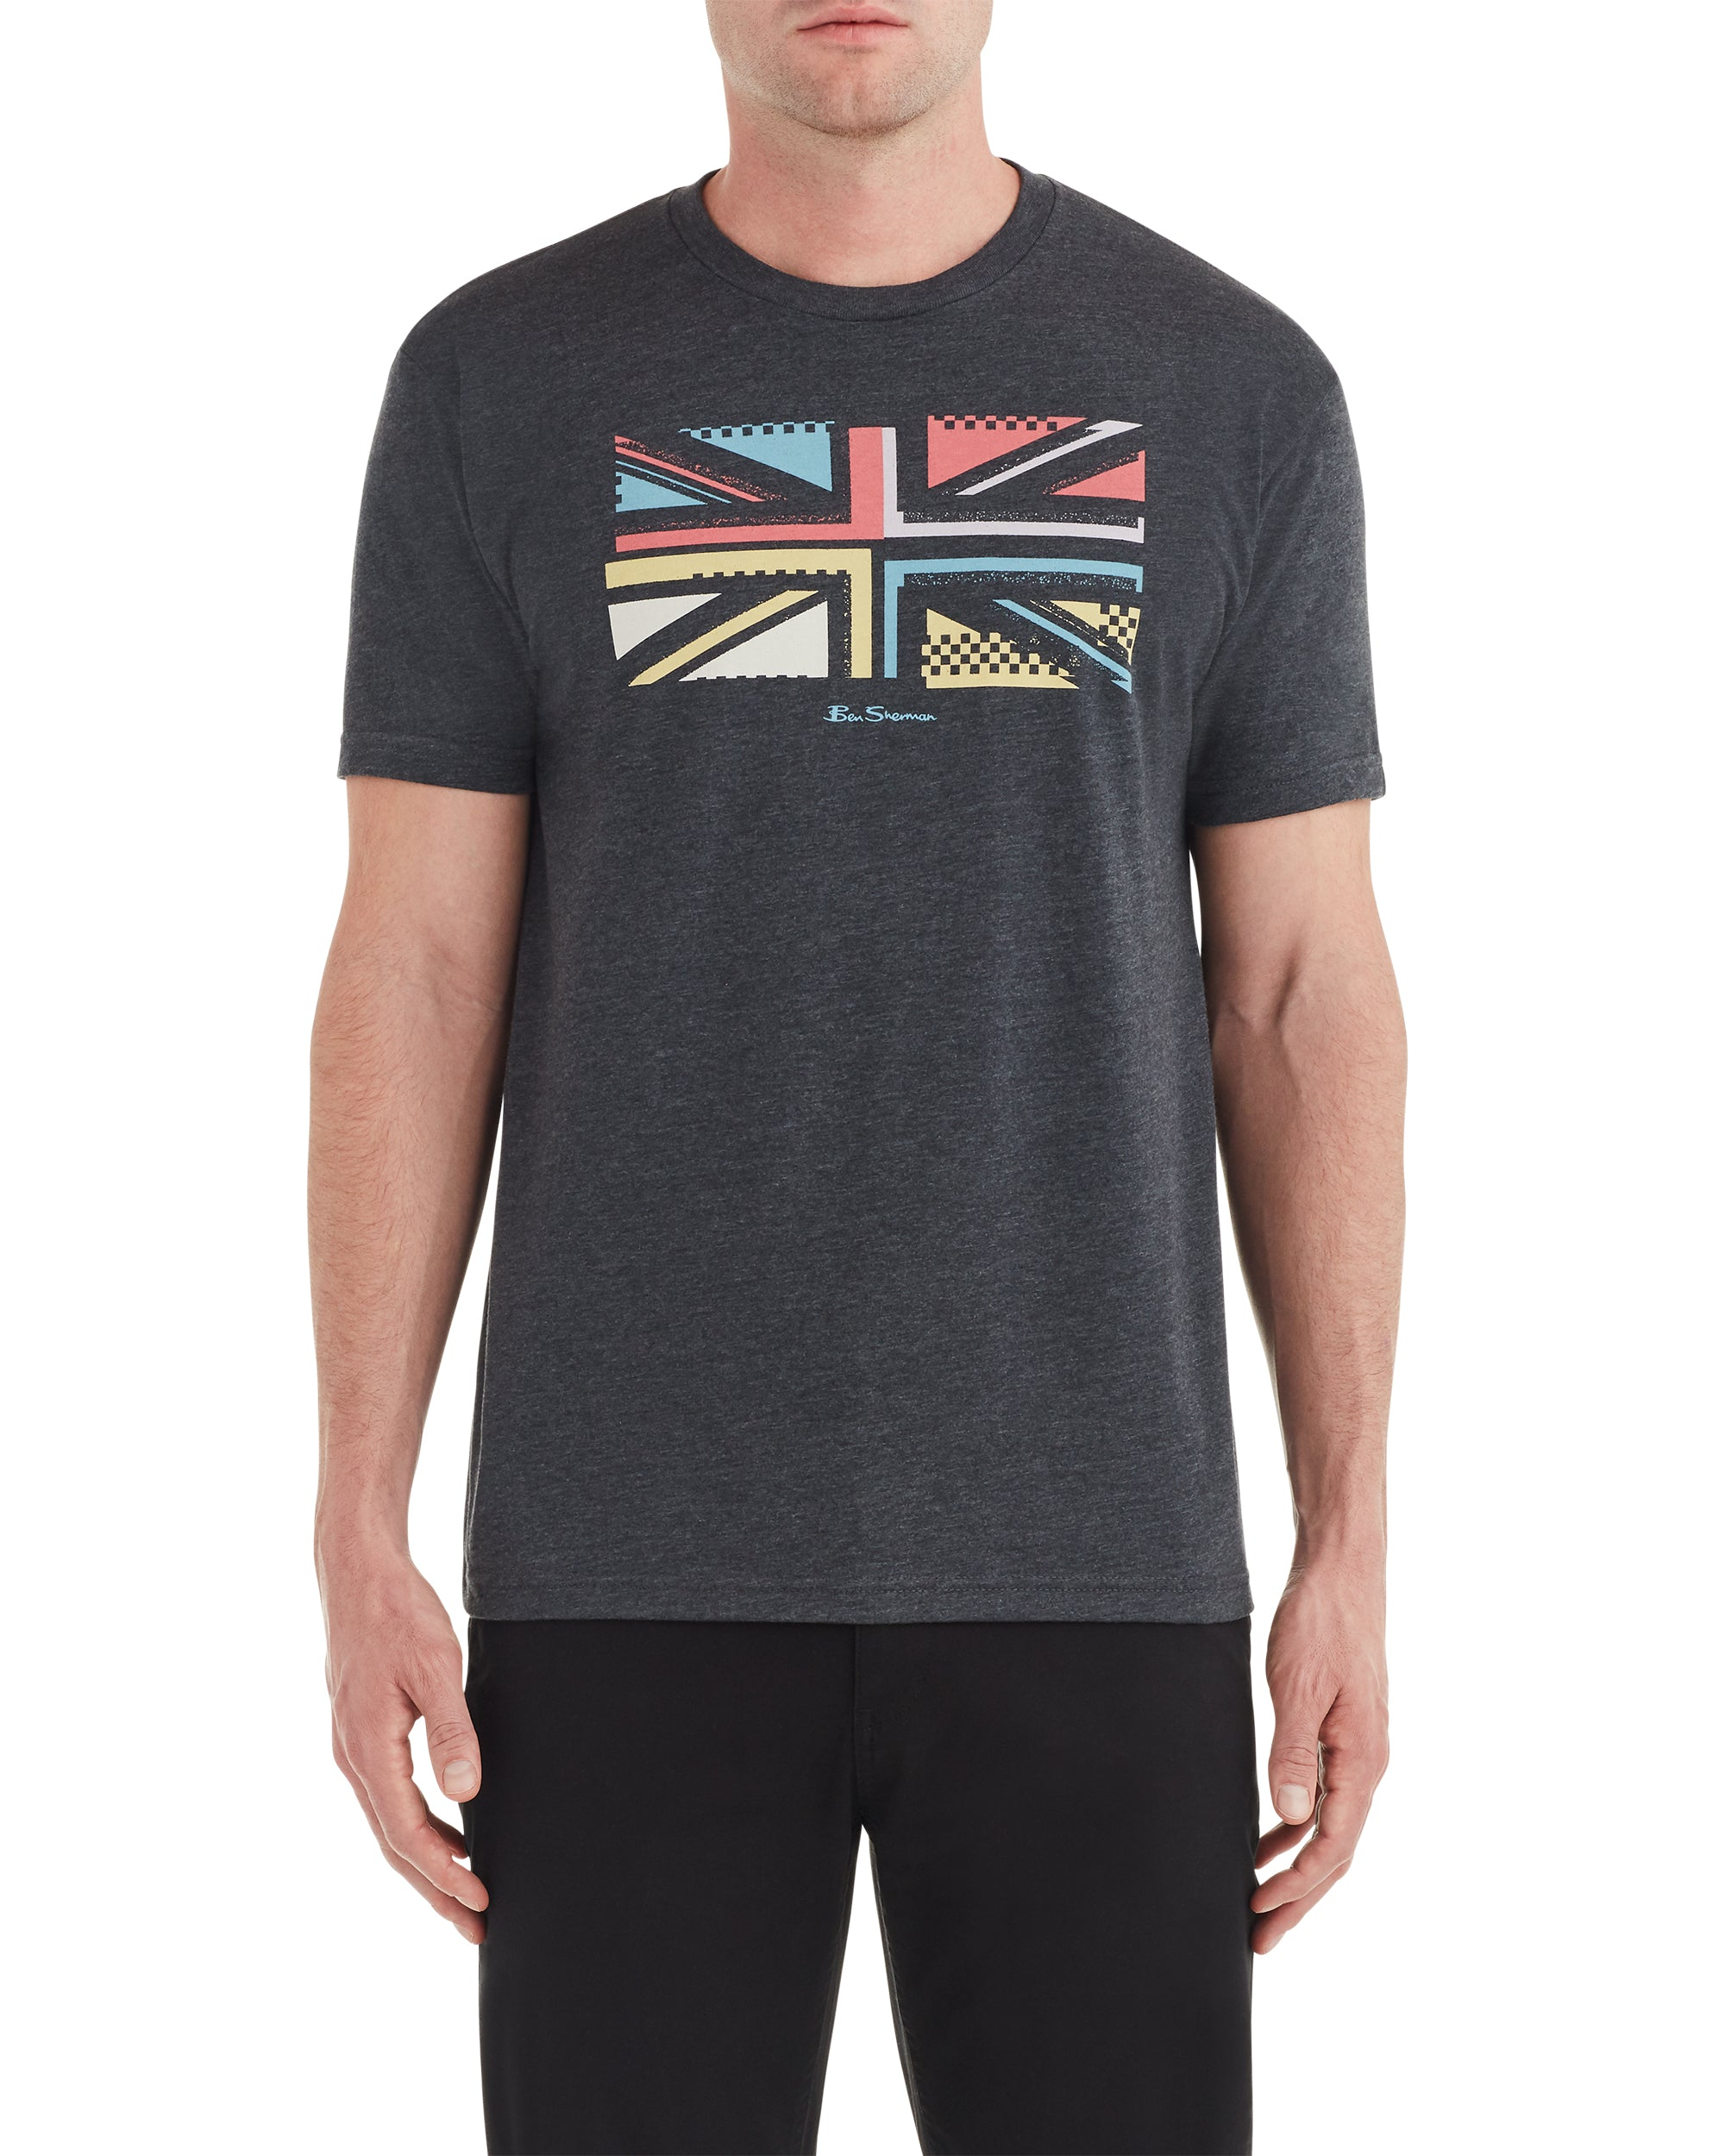 Union Jack Slice Graphic Tee - Charcoal Heather